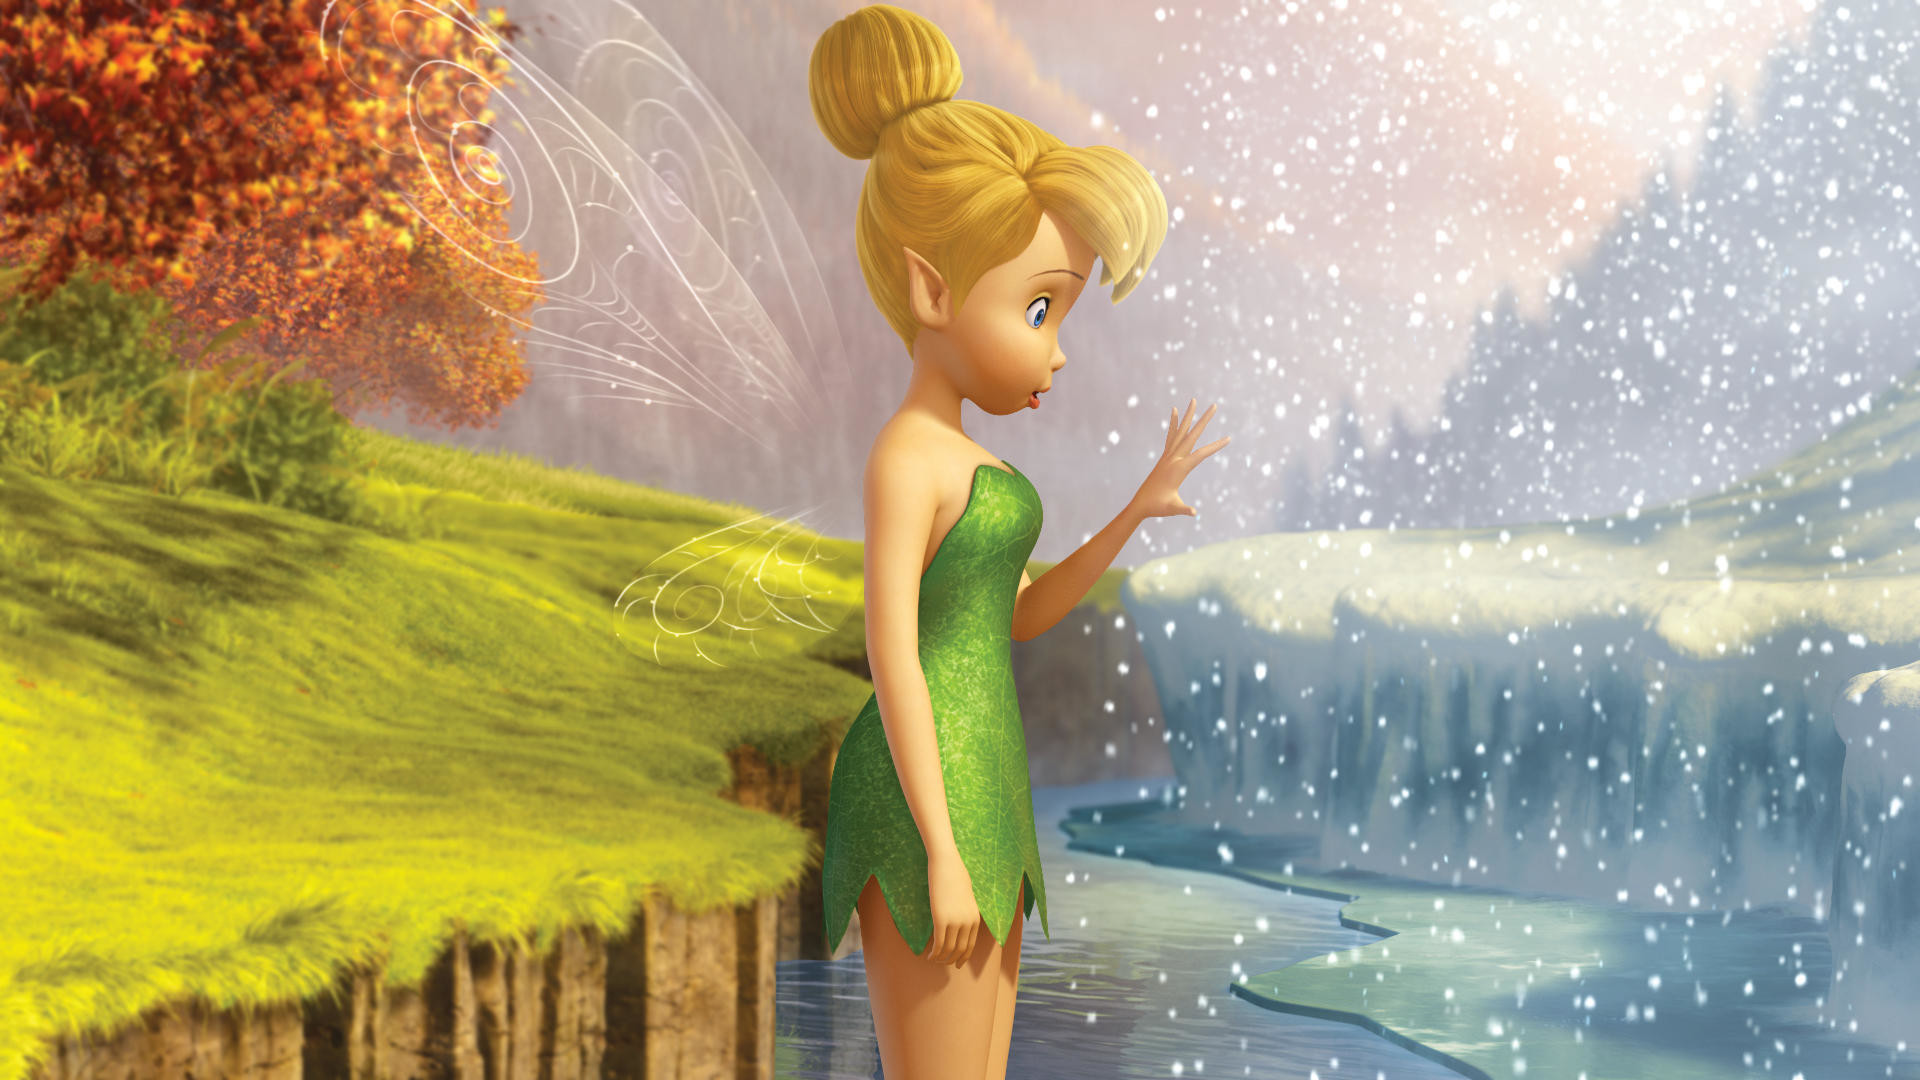 1920x1080 Tinkerbell & the Mysterious Winter Woods - http://www.cartoonography.com